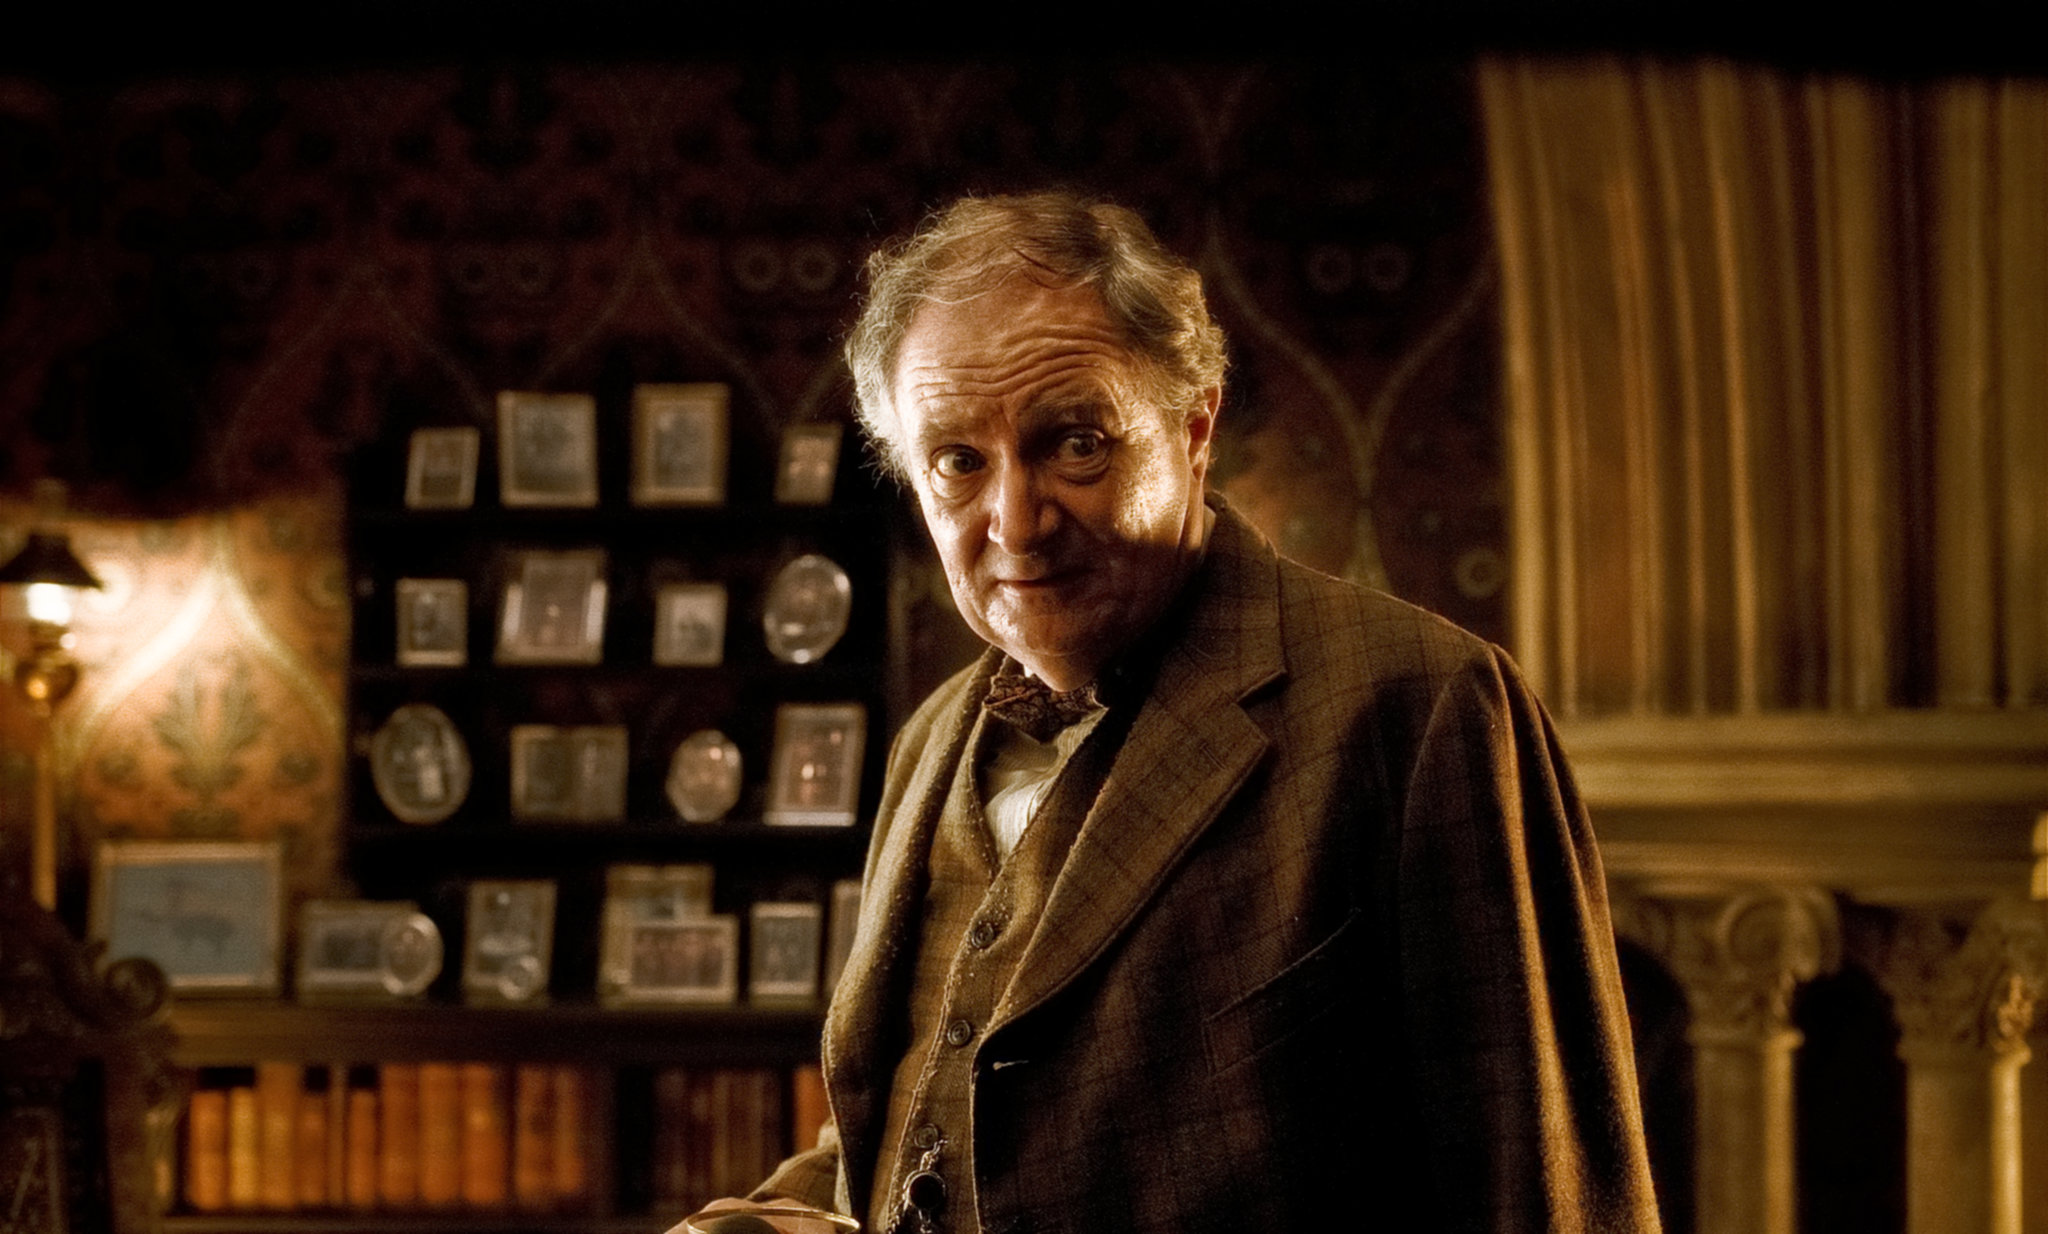 Professor Slughorn looks worried at the prospect of being asked about Tom Riddle